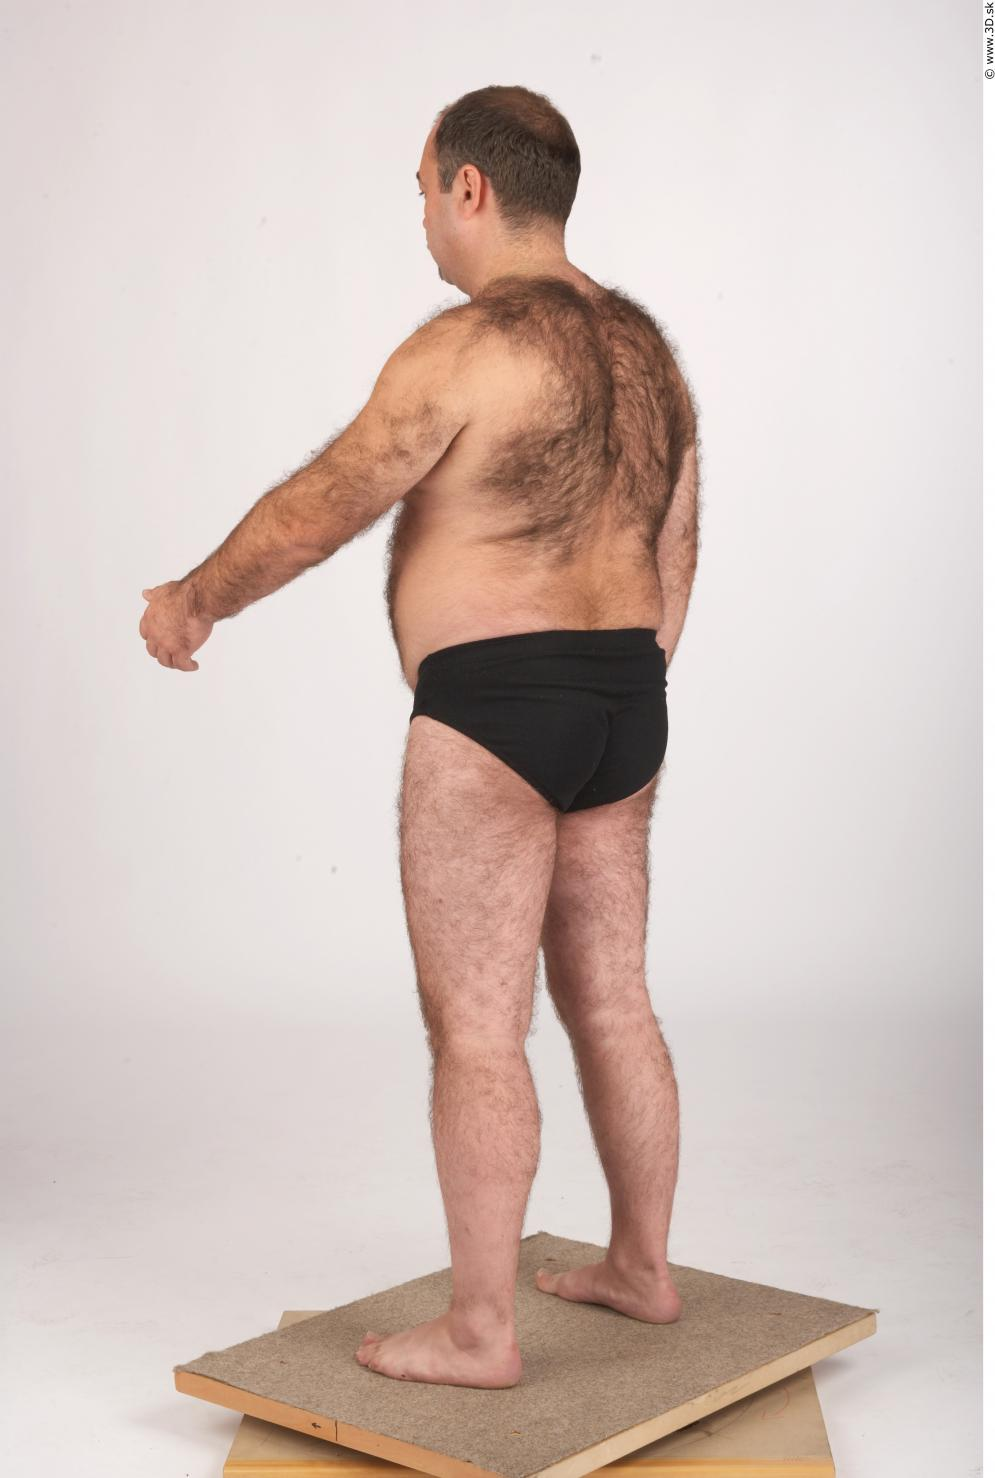 Image from Matej - Hairy male photo refences from 3D.sk - 288629matej_0070.jpg